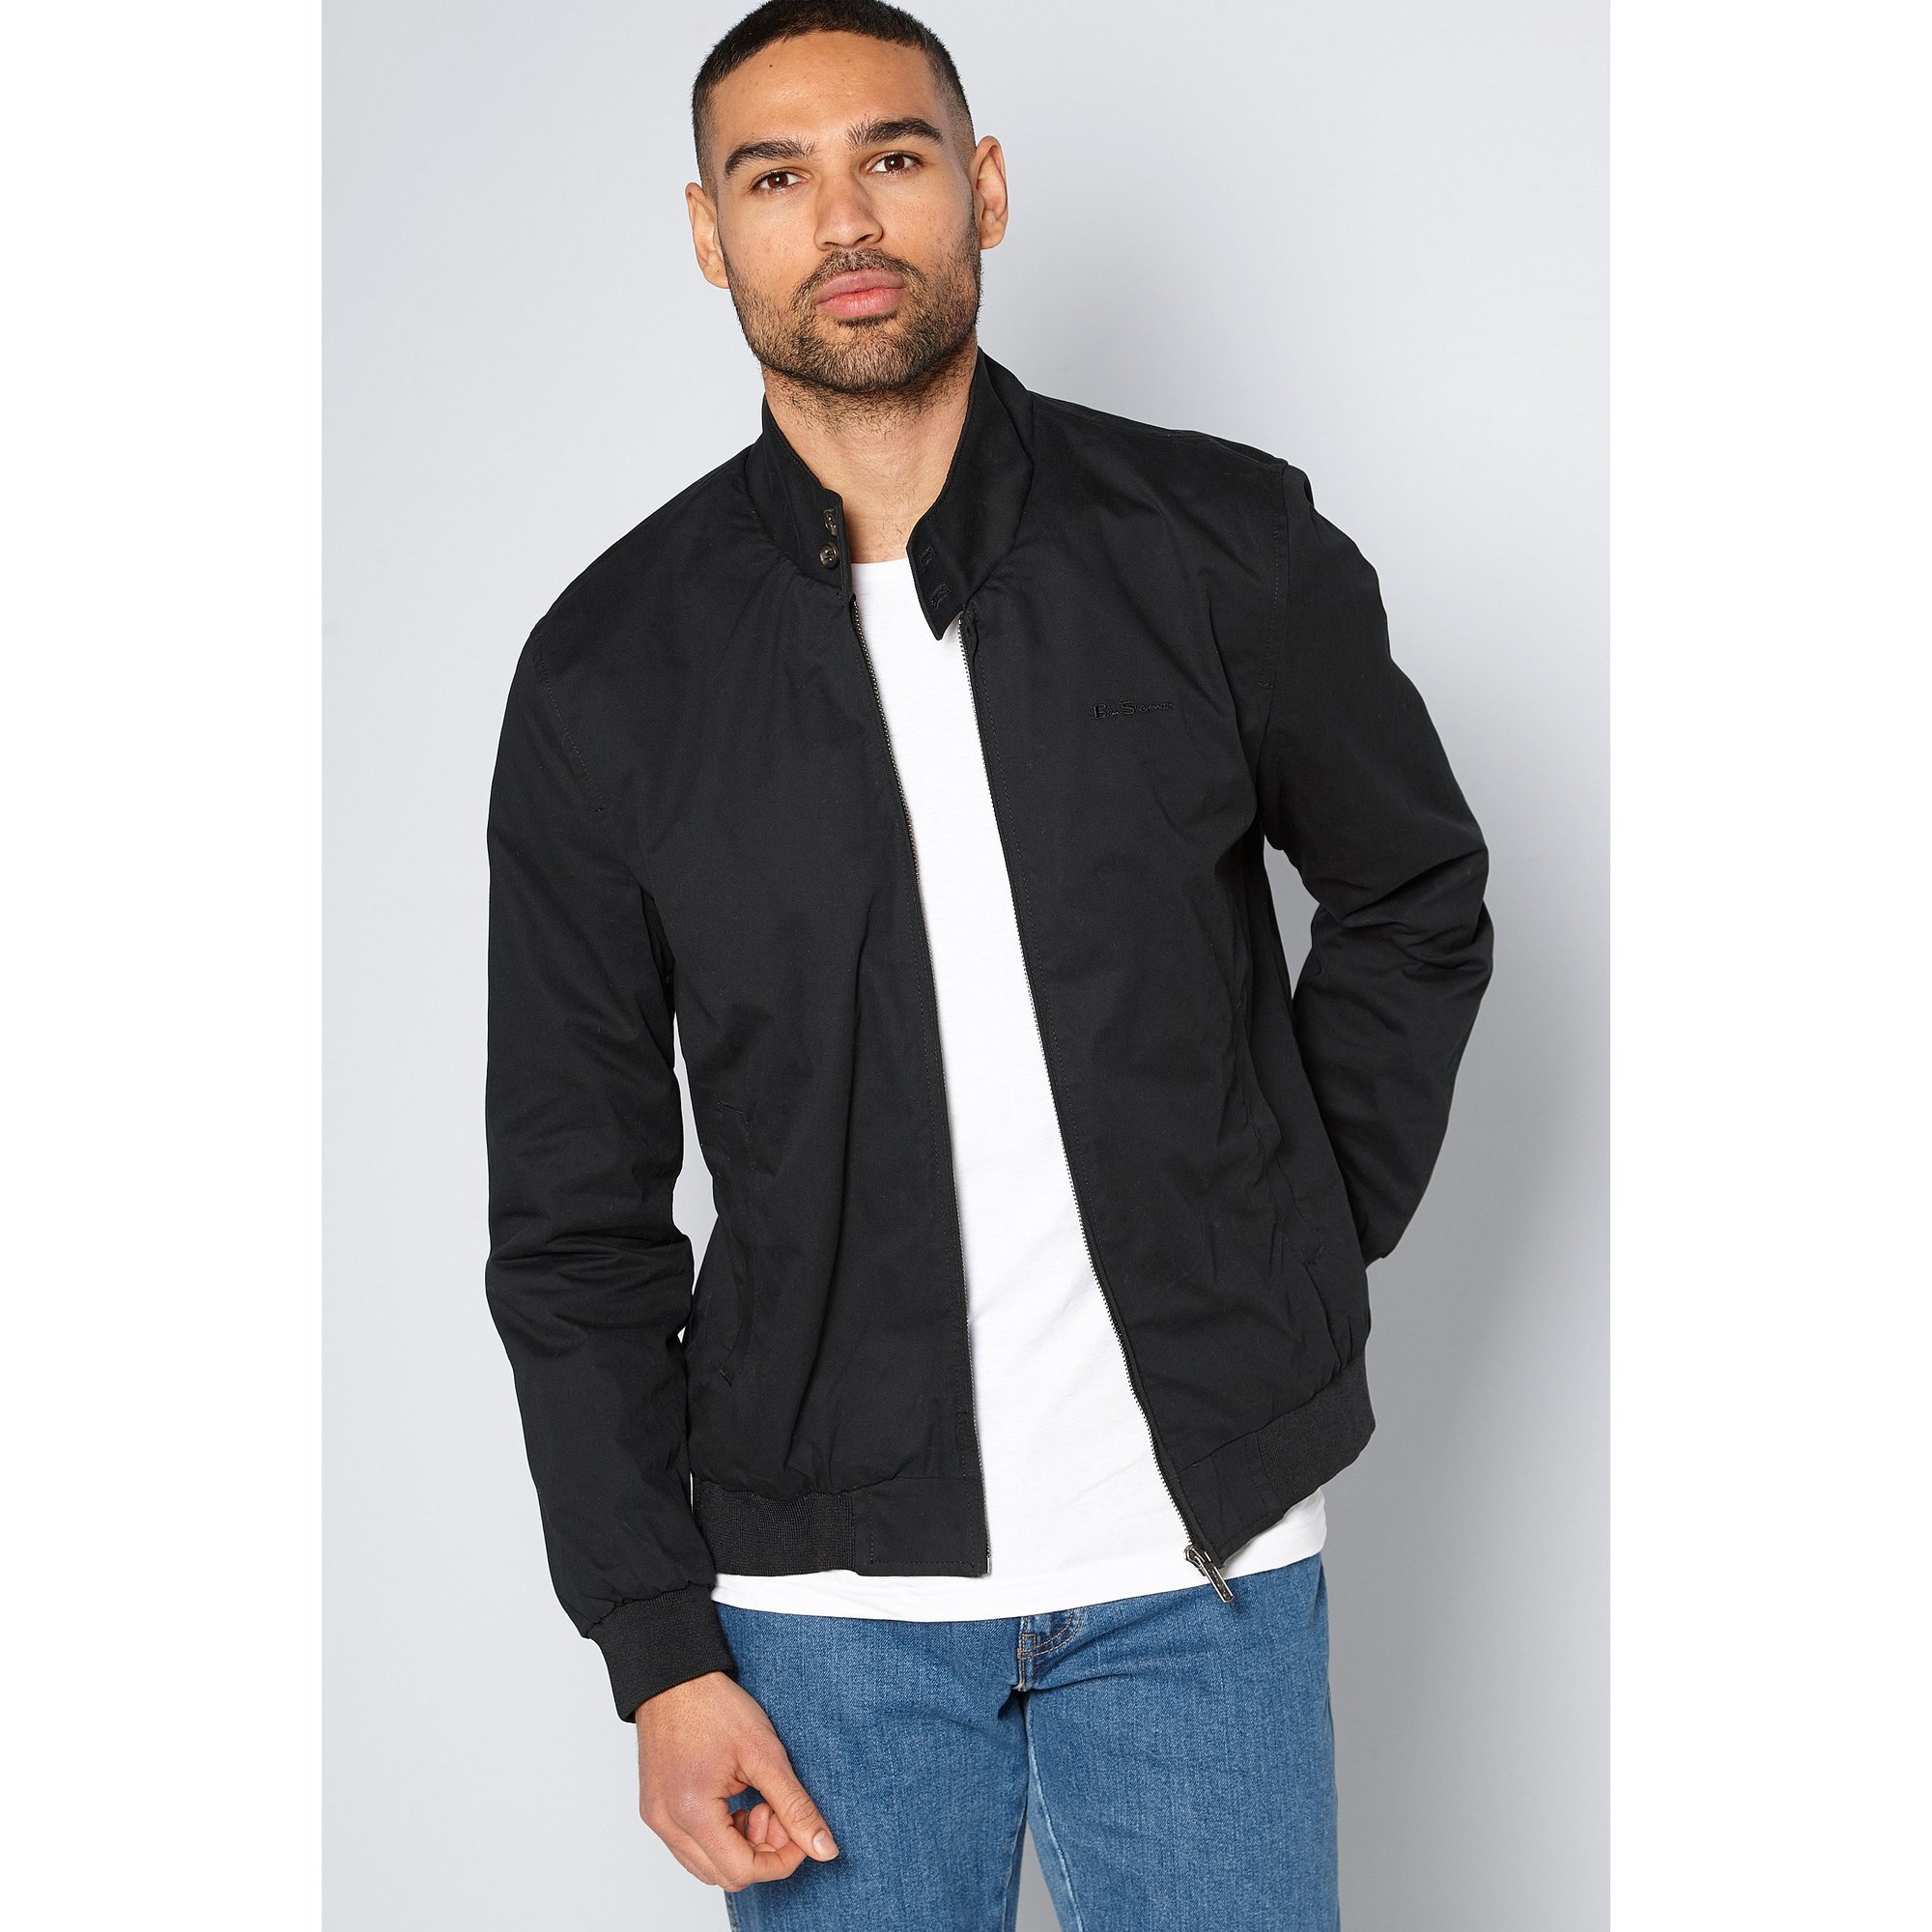 Image of Ben Sherman Harrington Jacket